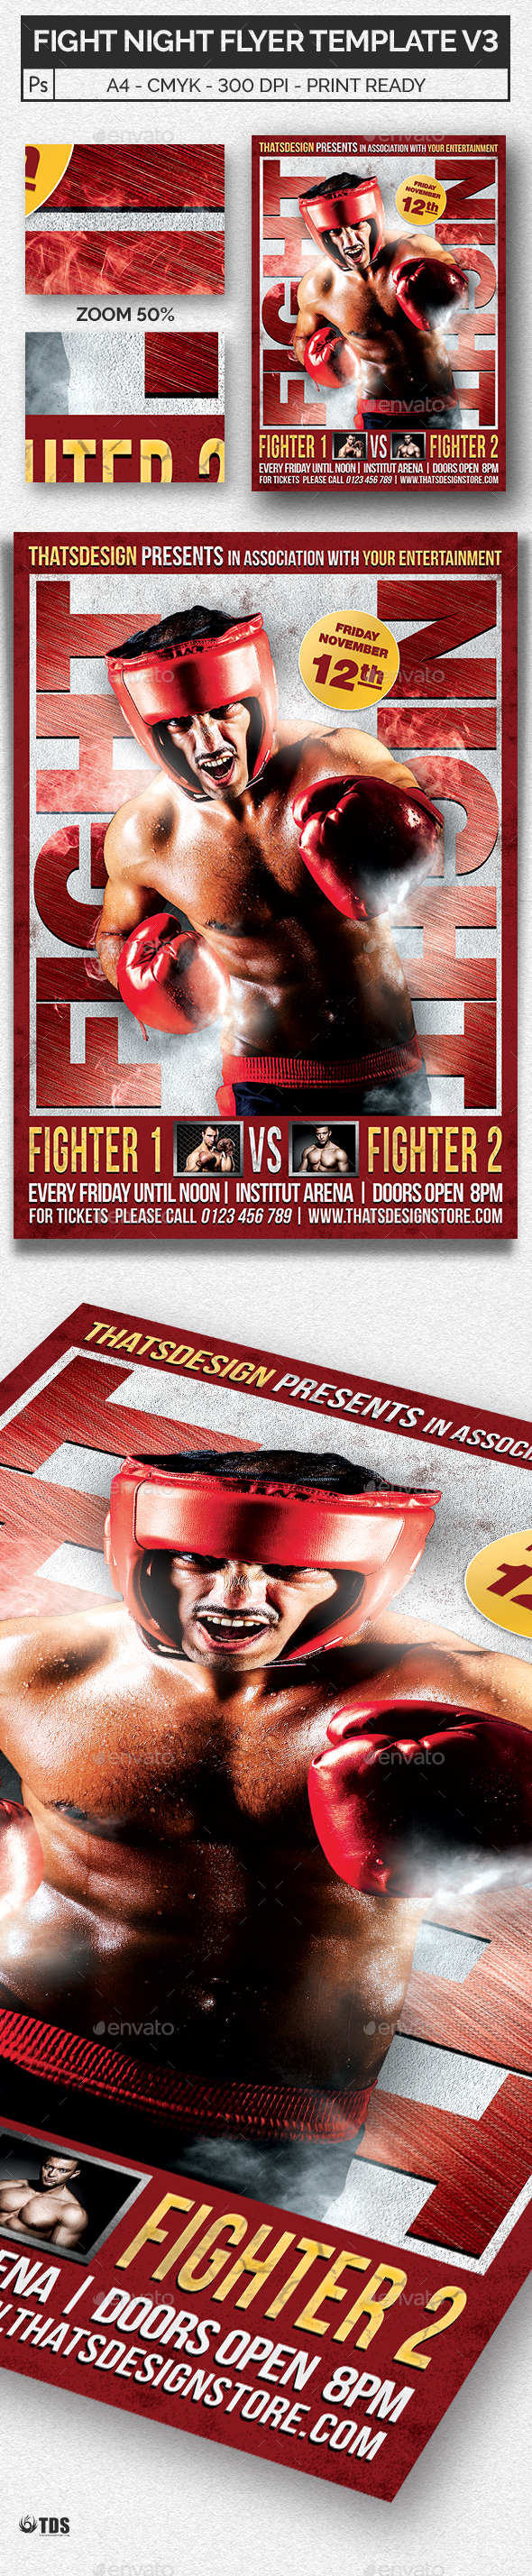 Fight Night Flyer Template V3 - Sports Events